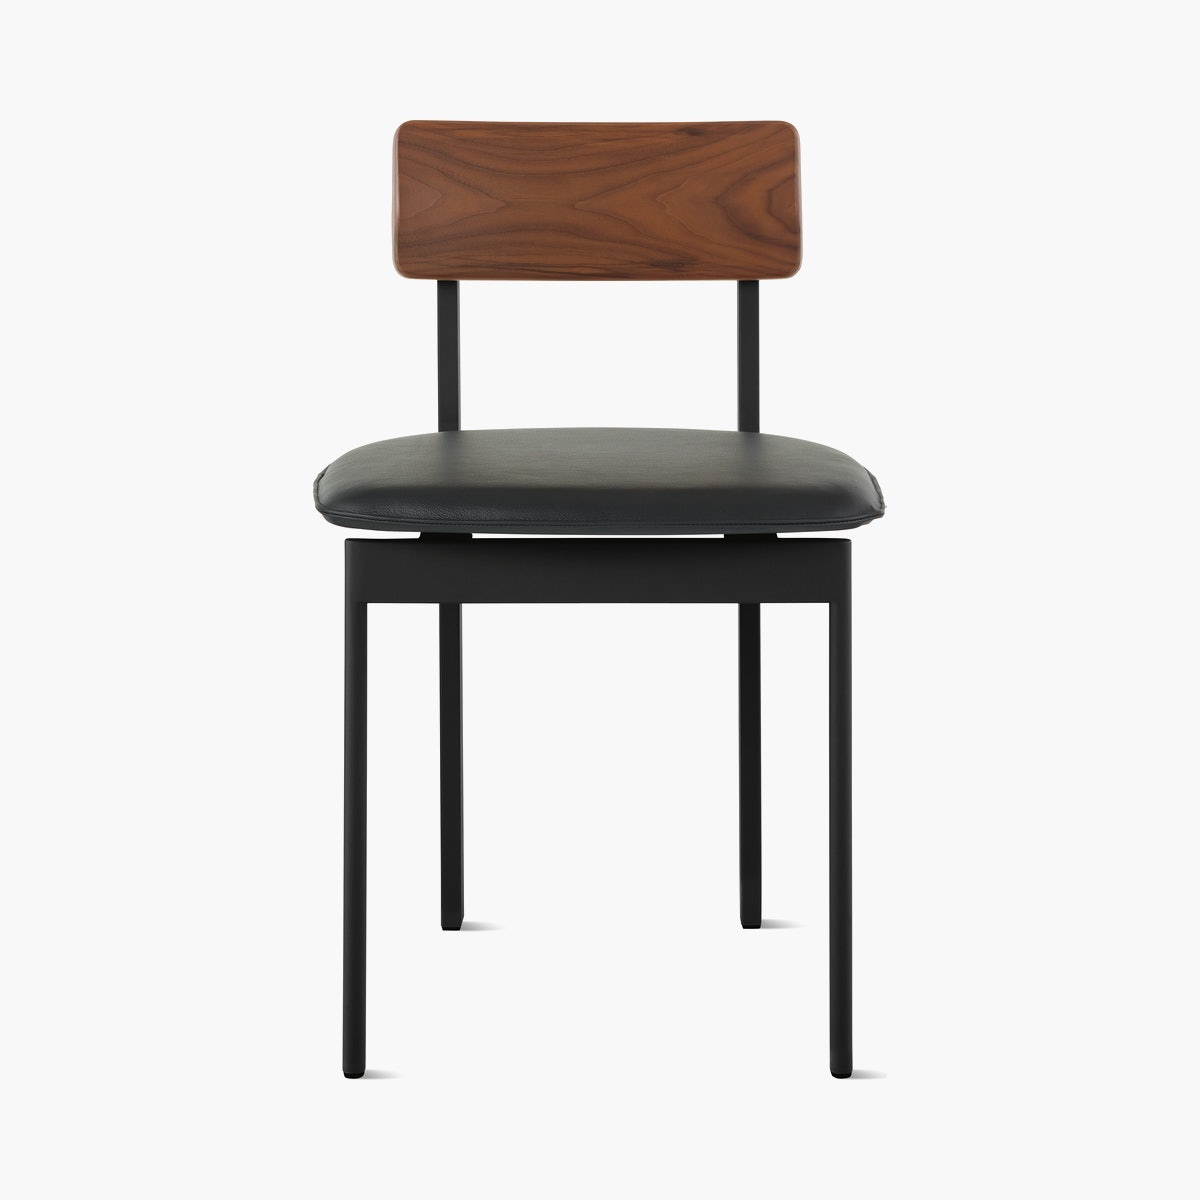 Betwixt Mixed Materials Chair, Side Chair